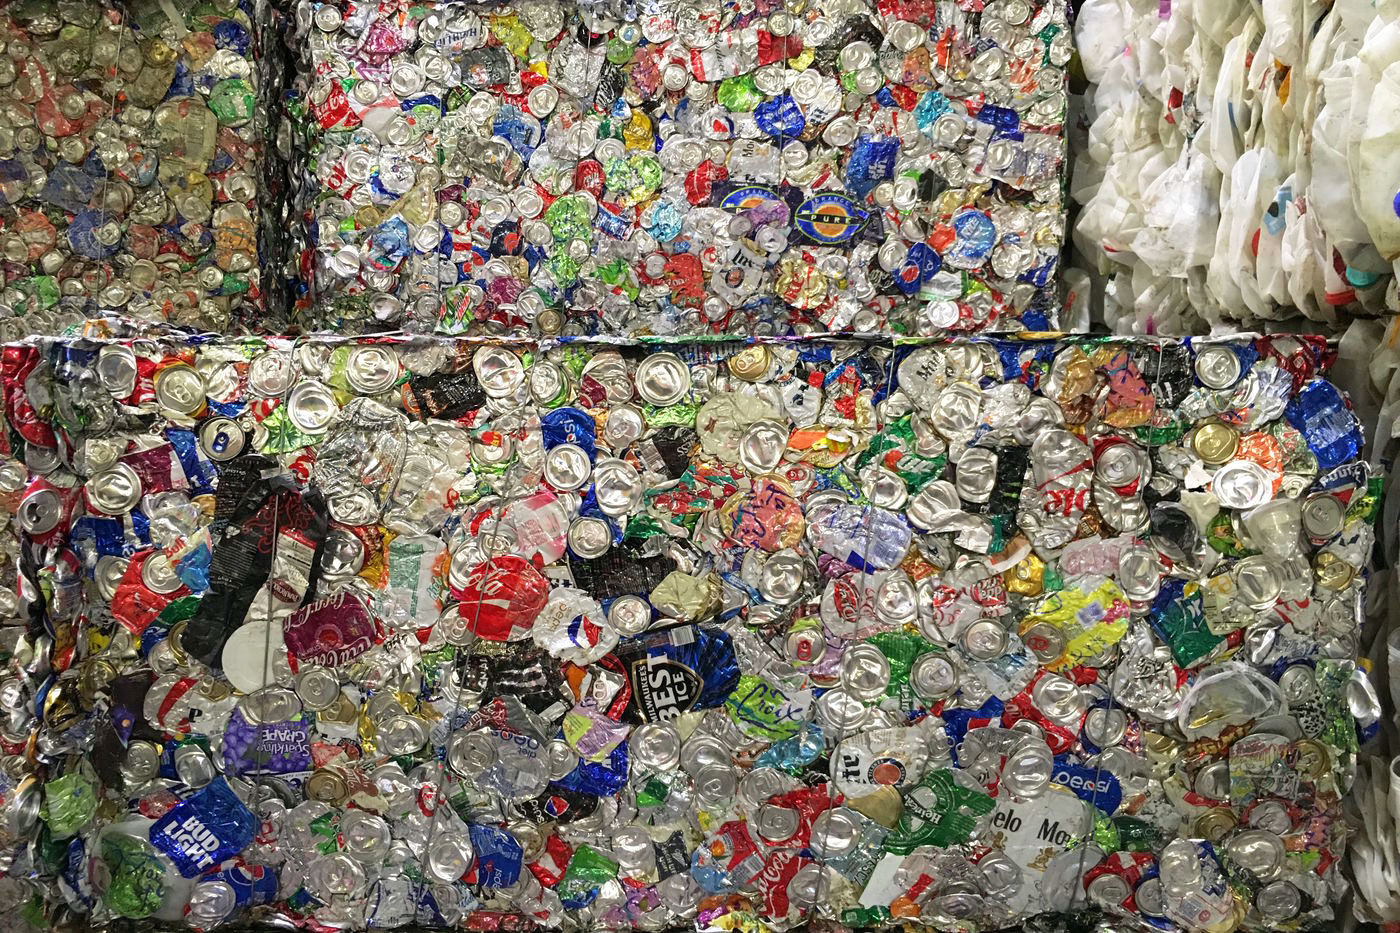 Stacked blocks of aluminum cans that have been crushed and compacted.